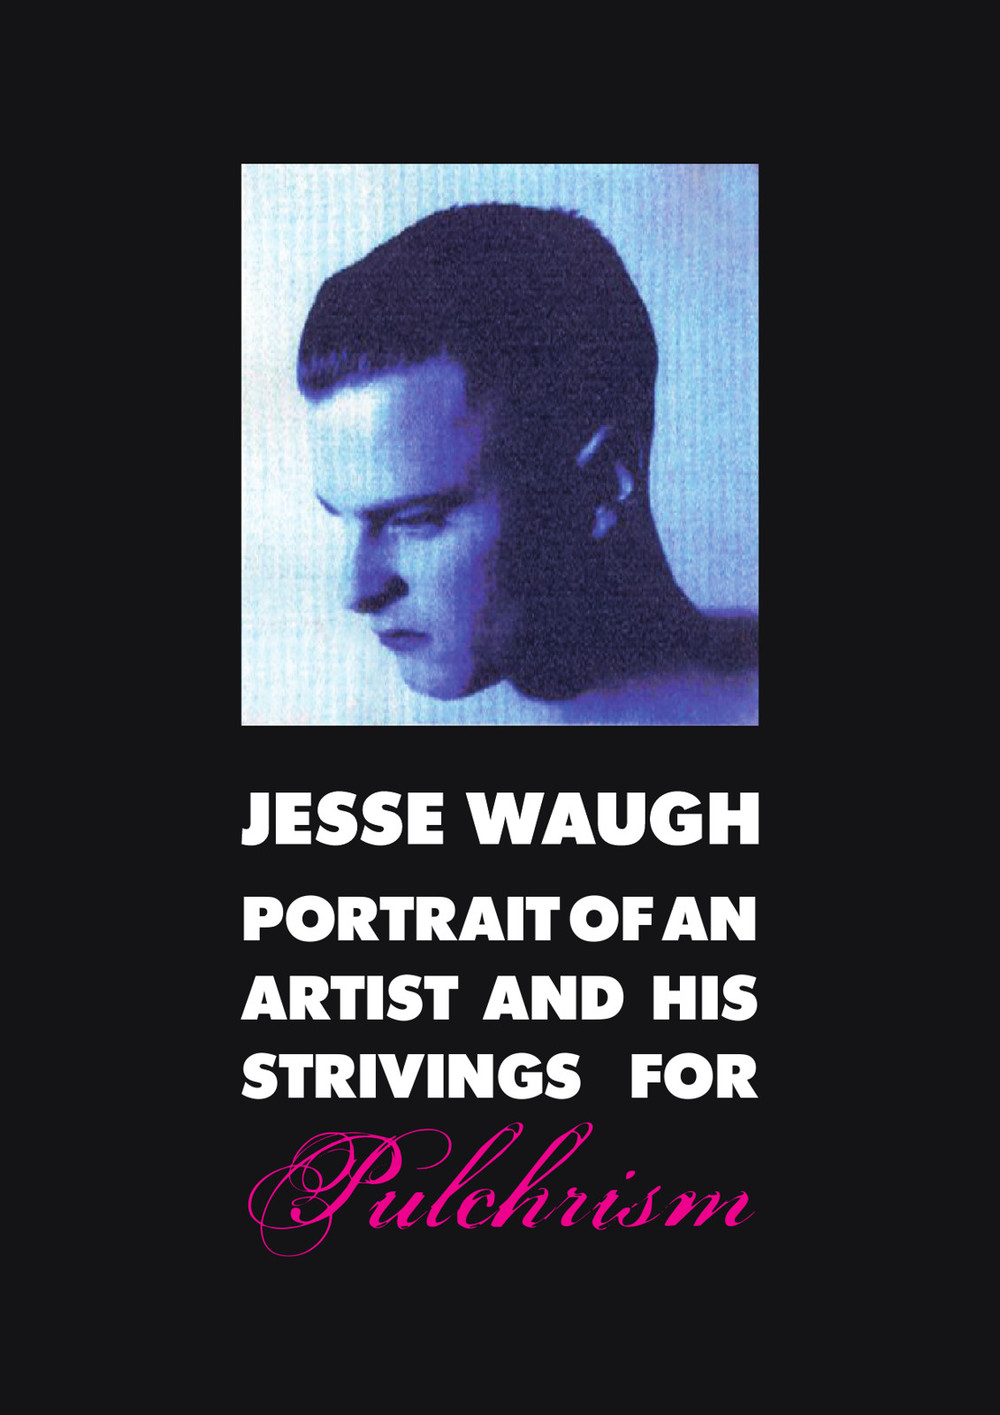 JESSE WAUGH: Portrait of an Artist and His Strivings for Pulchrism